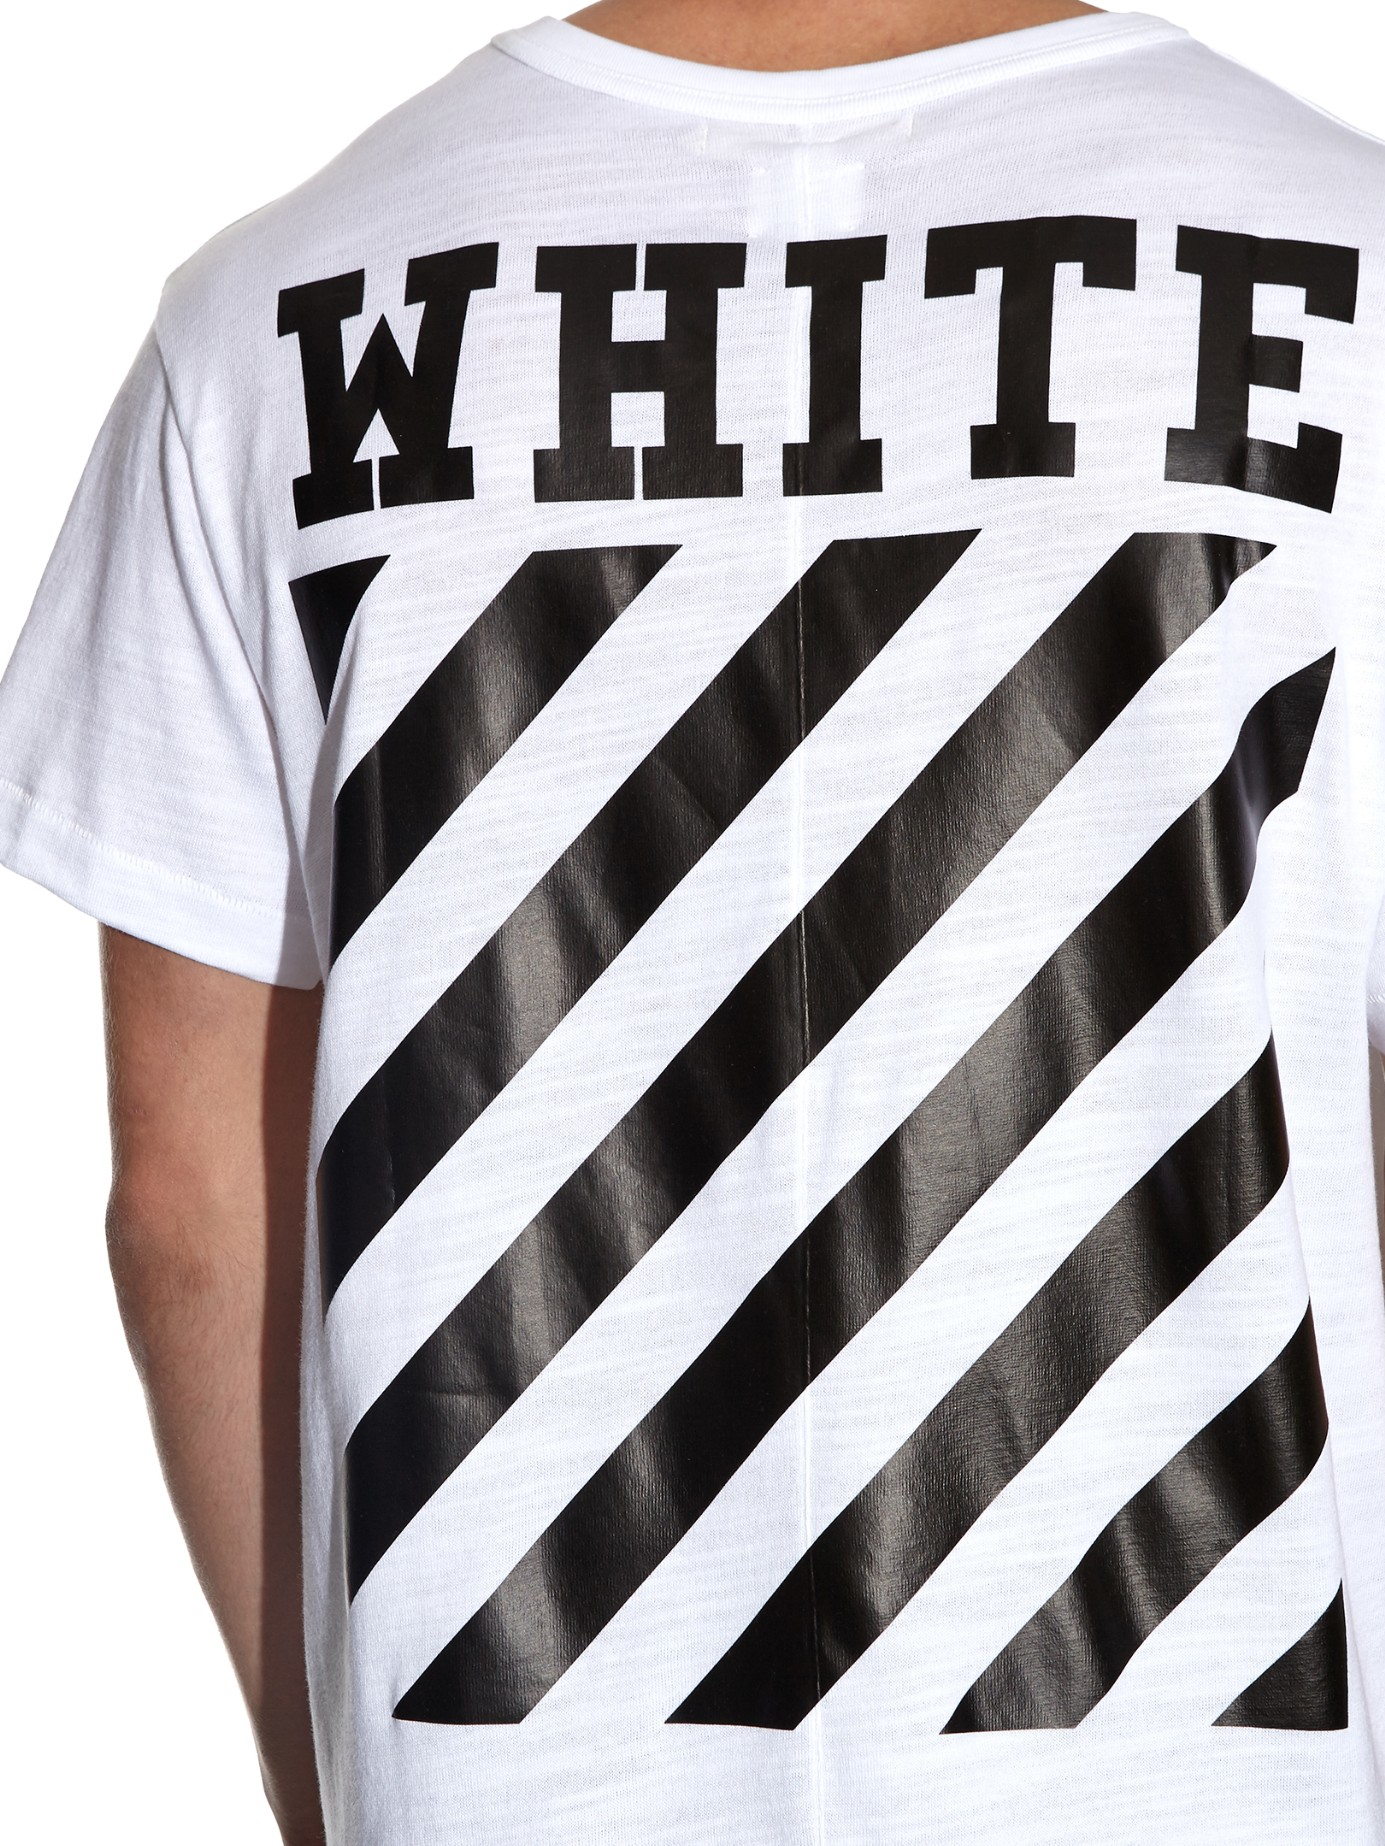 Off White Spring Summer 2017 Women S Collection: Off-White C/O Virgil Abloh Logo-Printed Cotton T